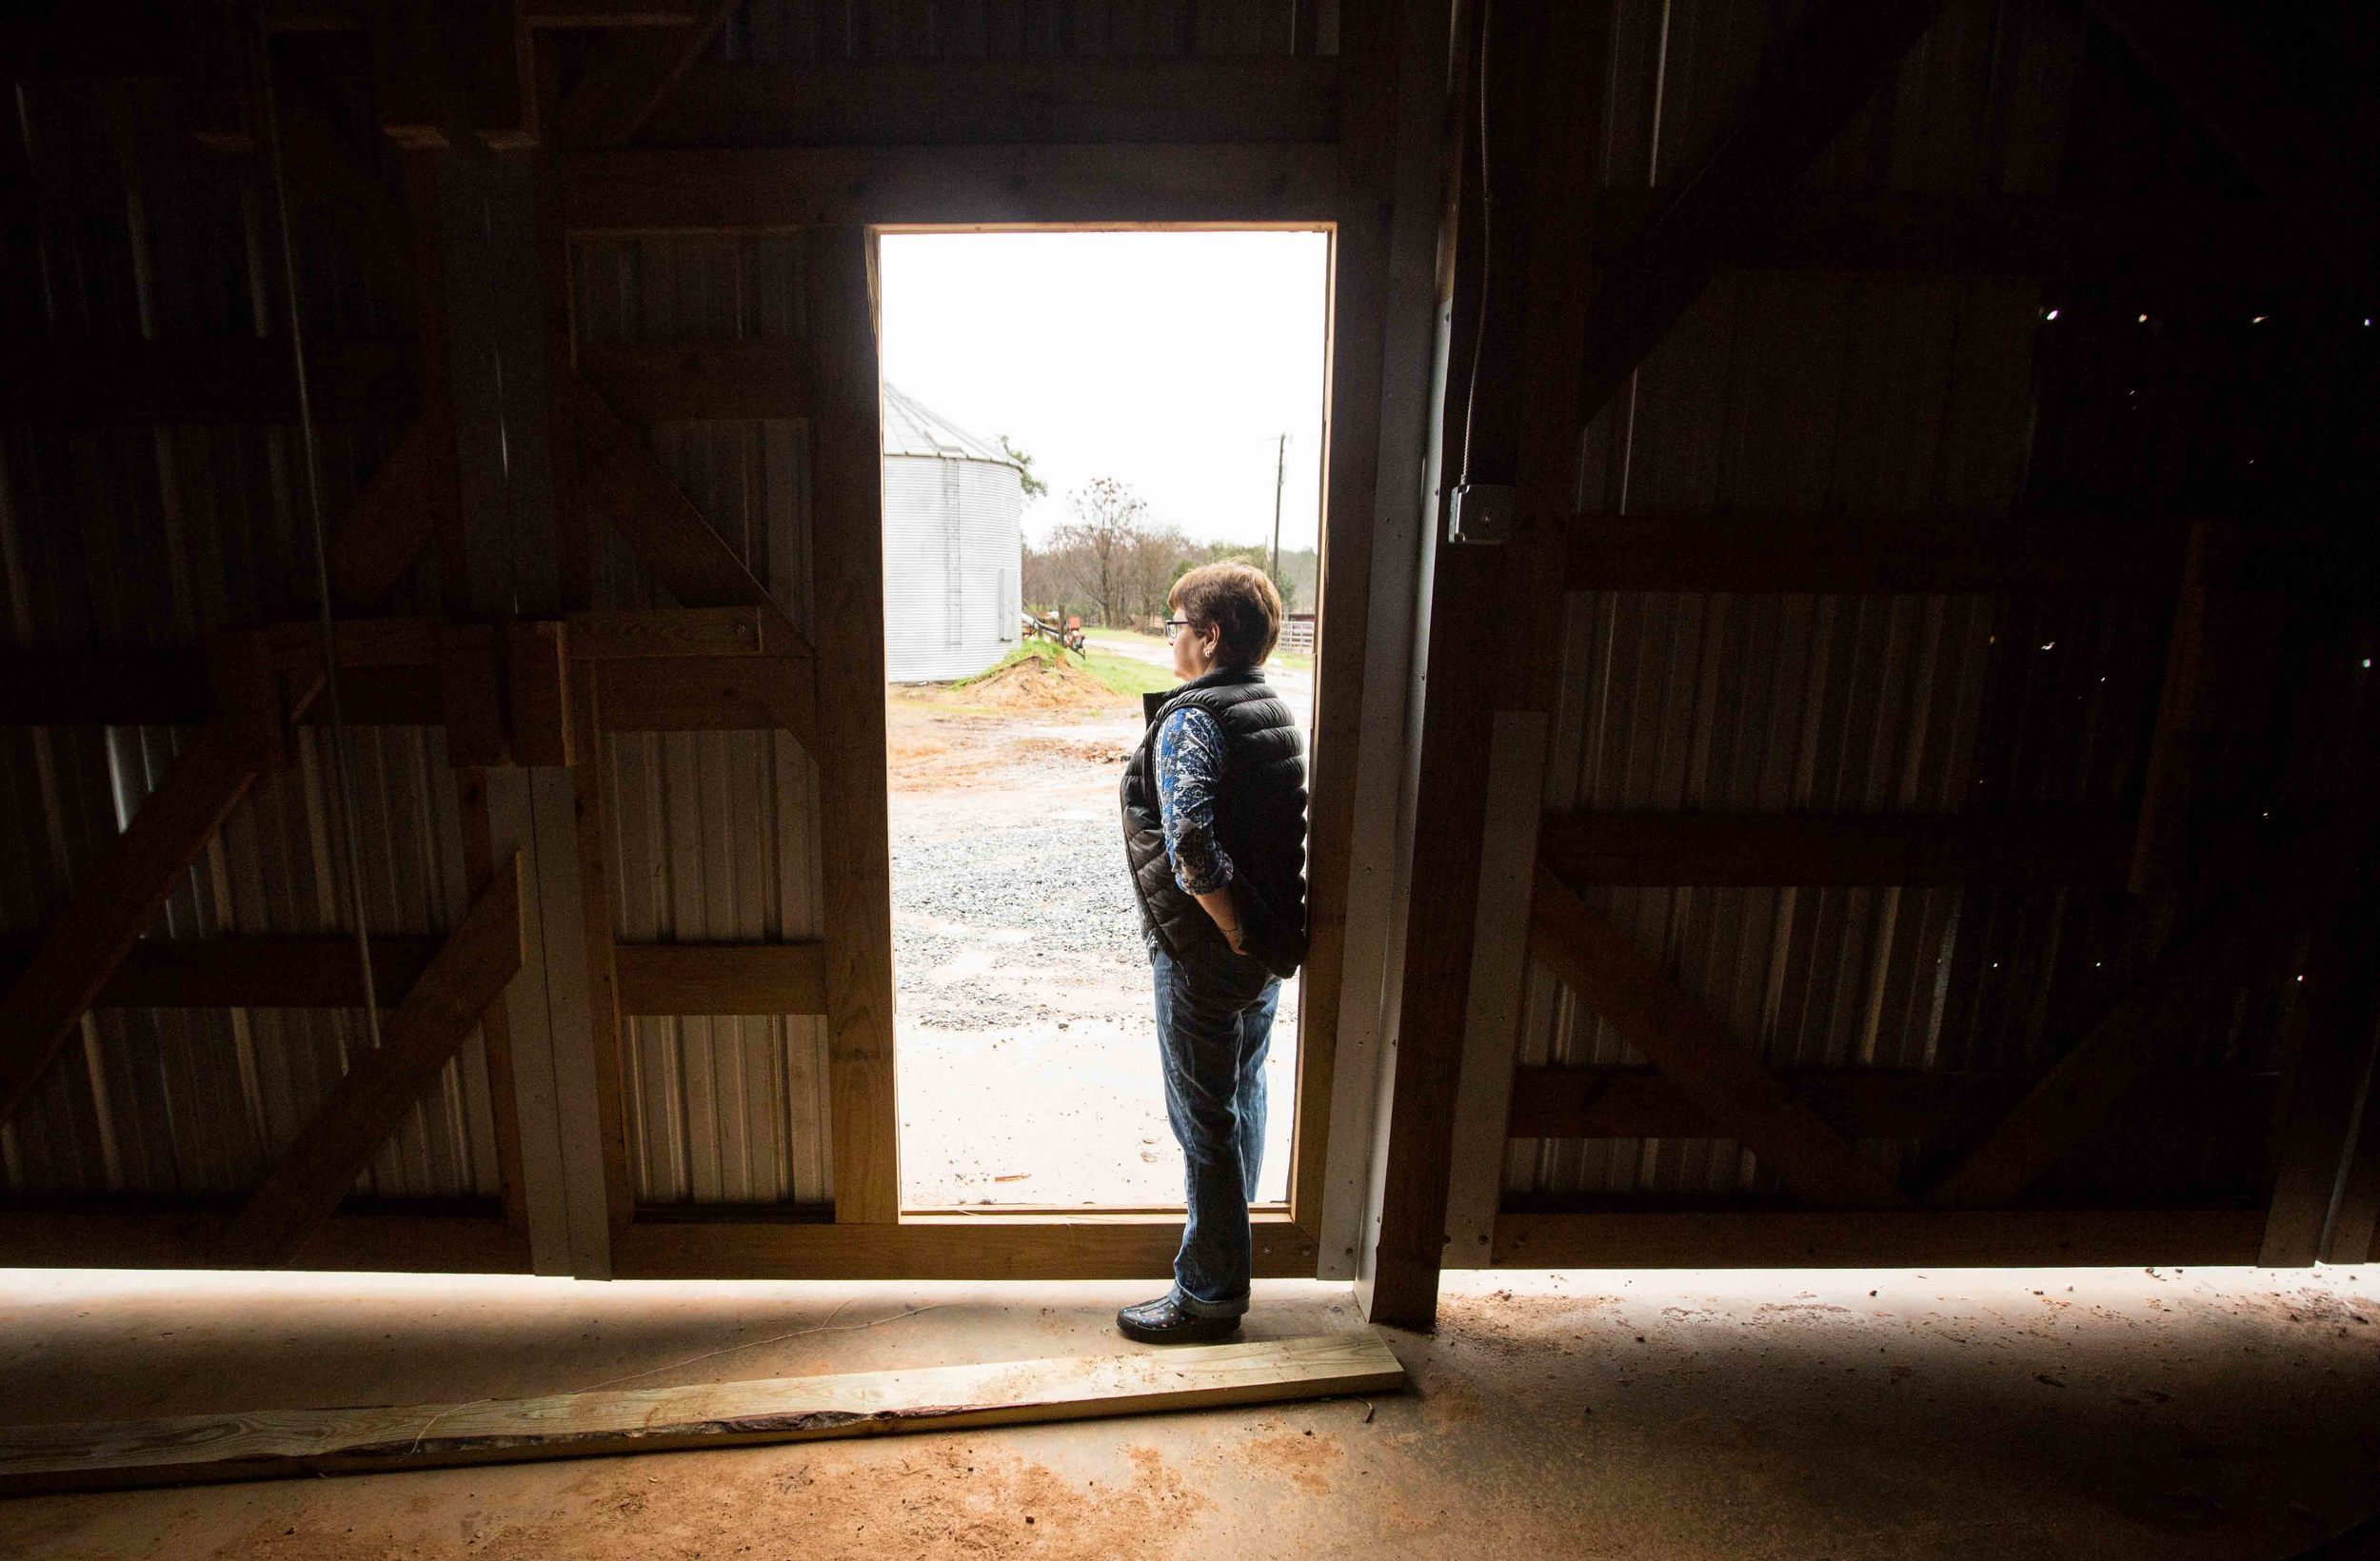 Farmer Melanie Sanders stands in the door a storage building on Buffalo Creek Straw and Seed Farm, Wednesday, Feb. 3, 2016, in Stephens, Ga. With over 42,000 farmers working in the Georgia agriculture industry, farming contributes over $73 Billion to Georgia's economy each year. Forecasters say profits are expected be down as well as exports in 2016 nationwide due to a fragile world economy. Photo by Branden Camp